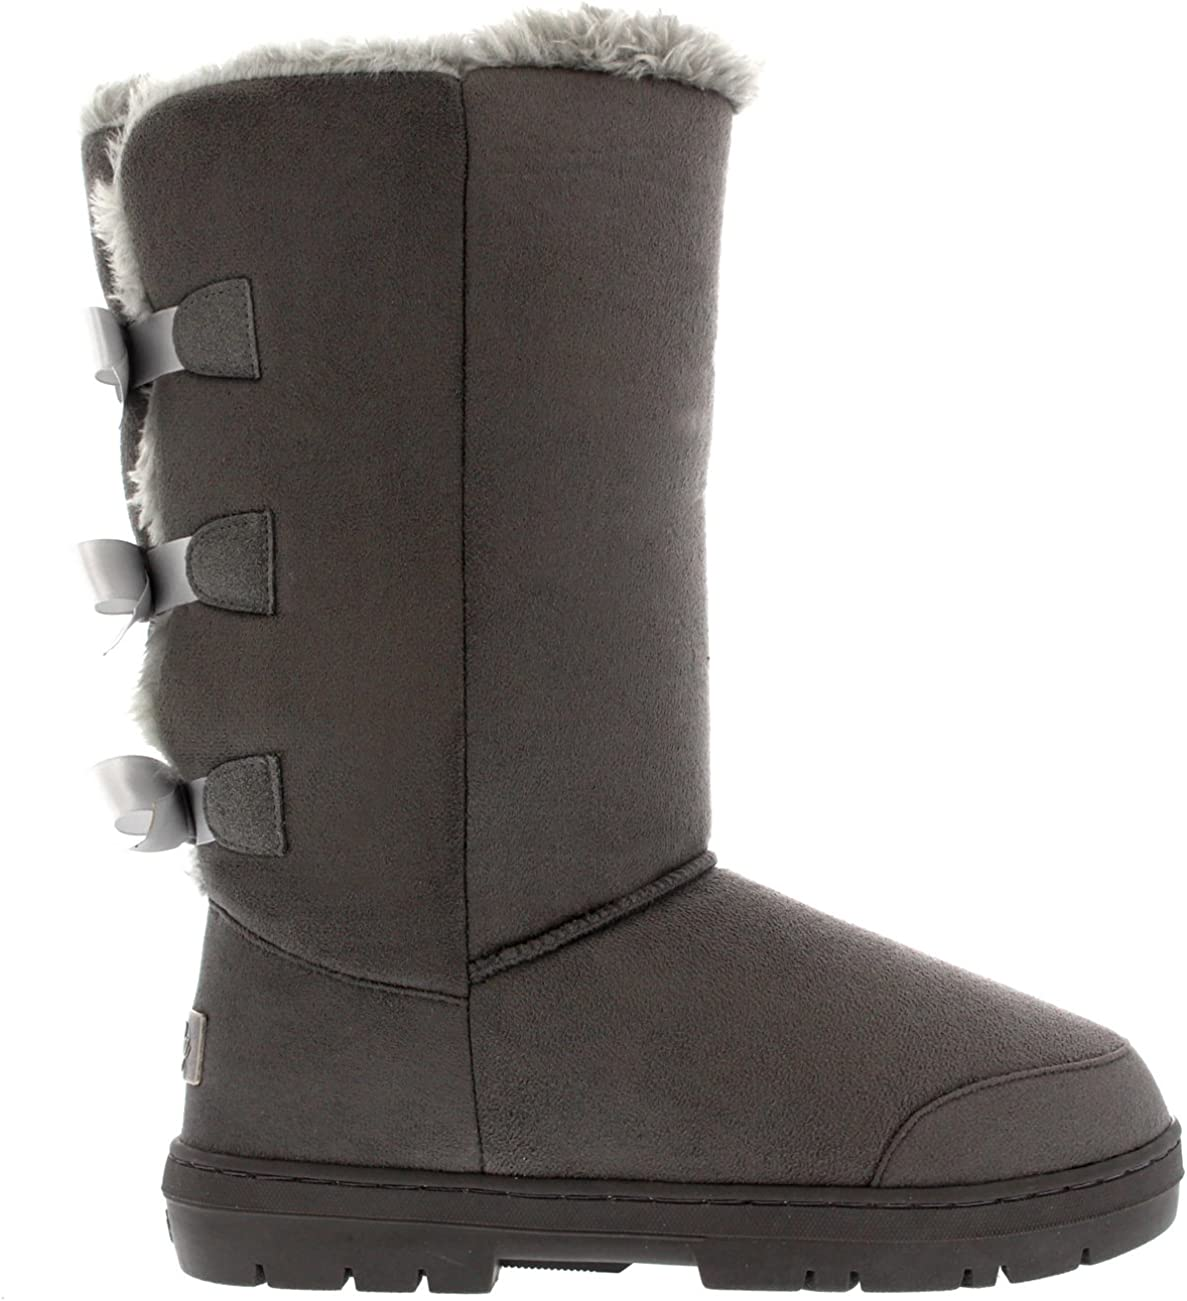 Mujer Triplet Bow Tall Classic Fur Impermeable Invierno Rain Nieve Botas